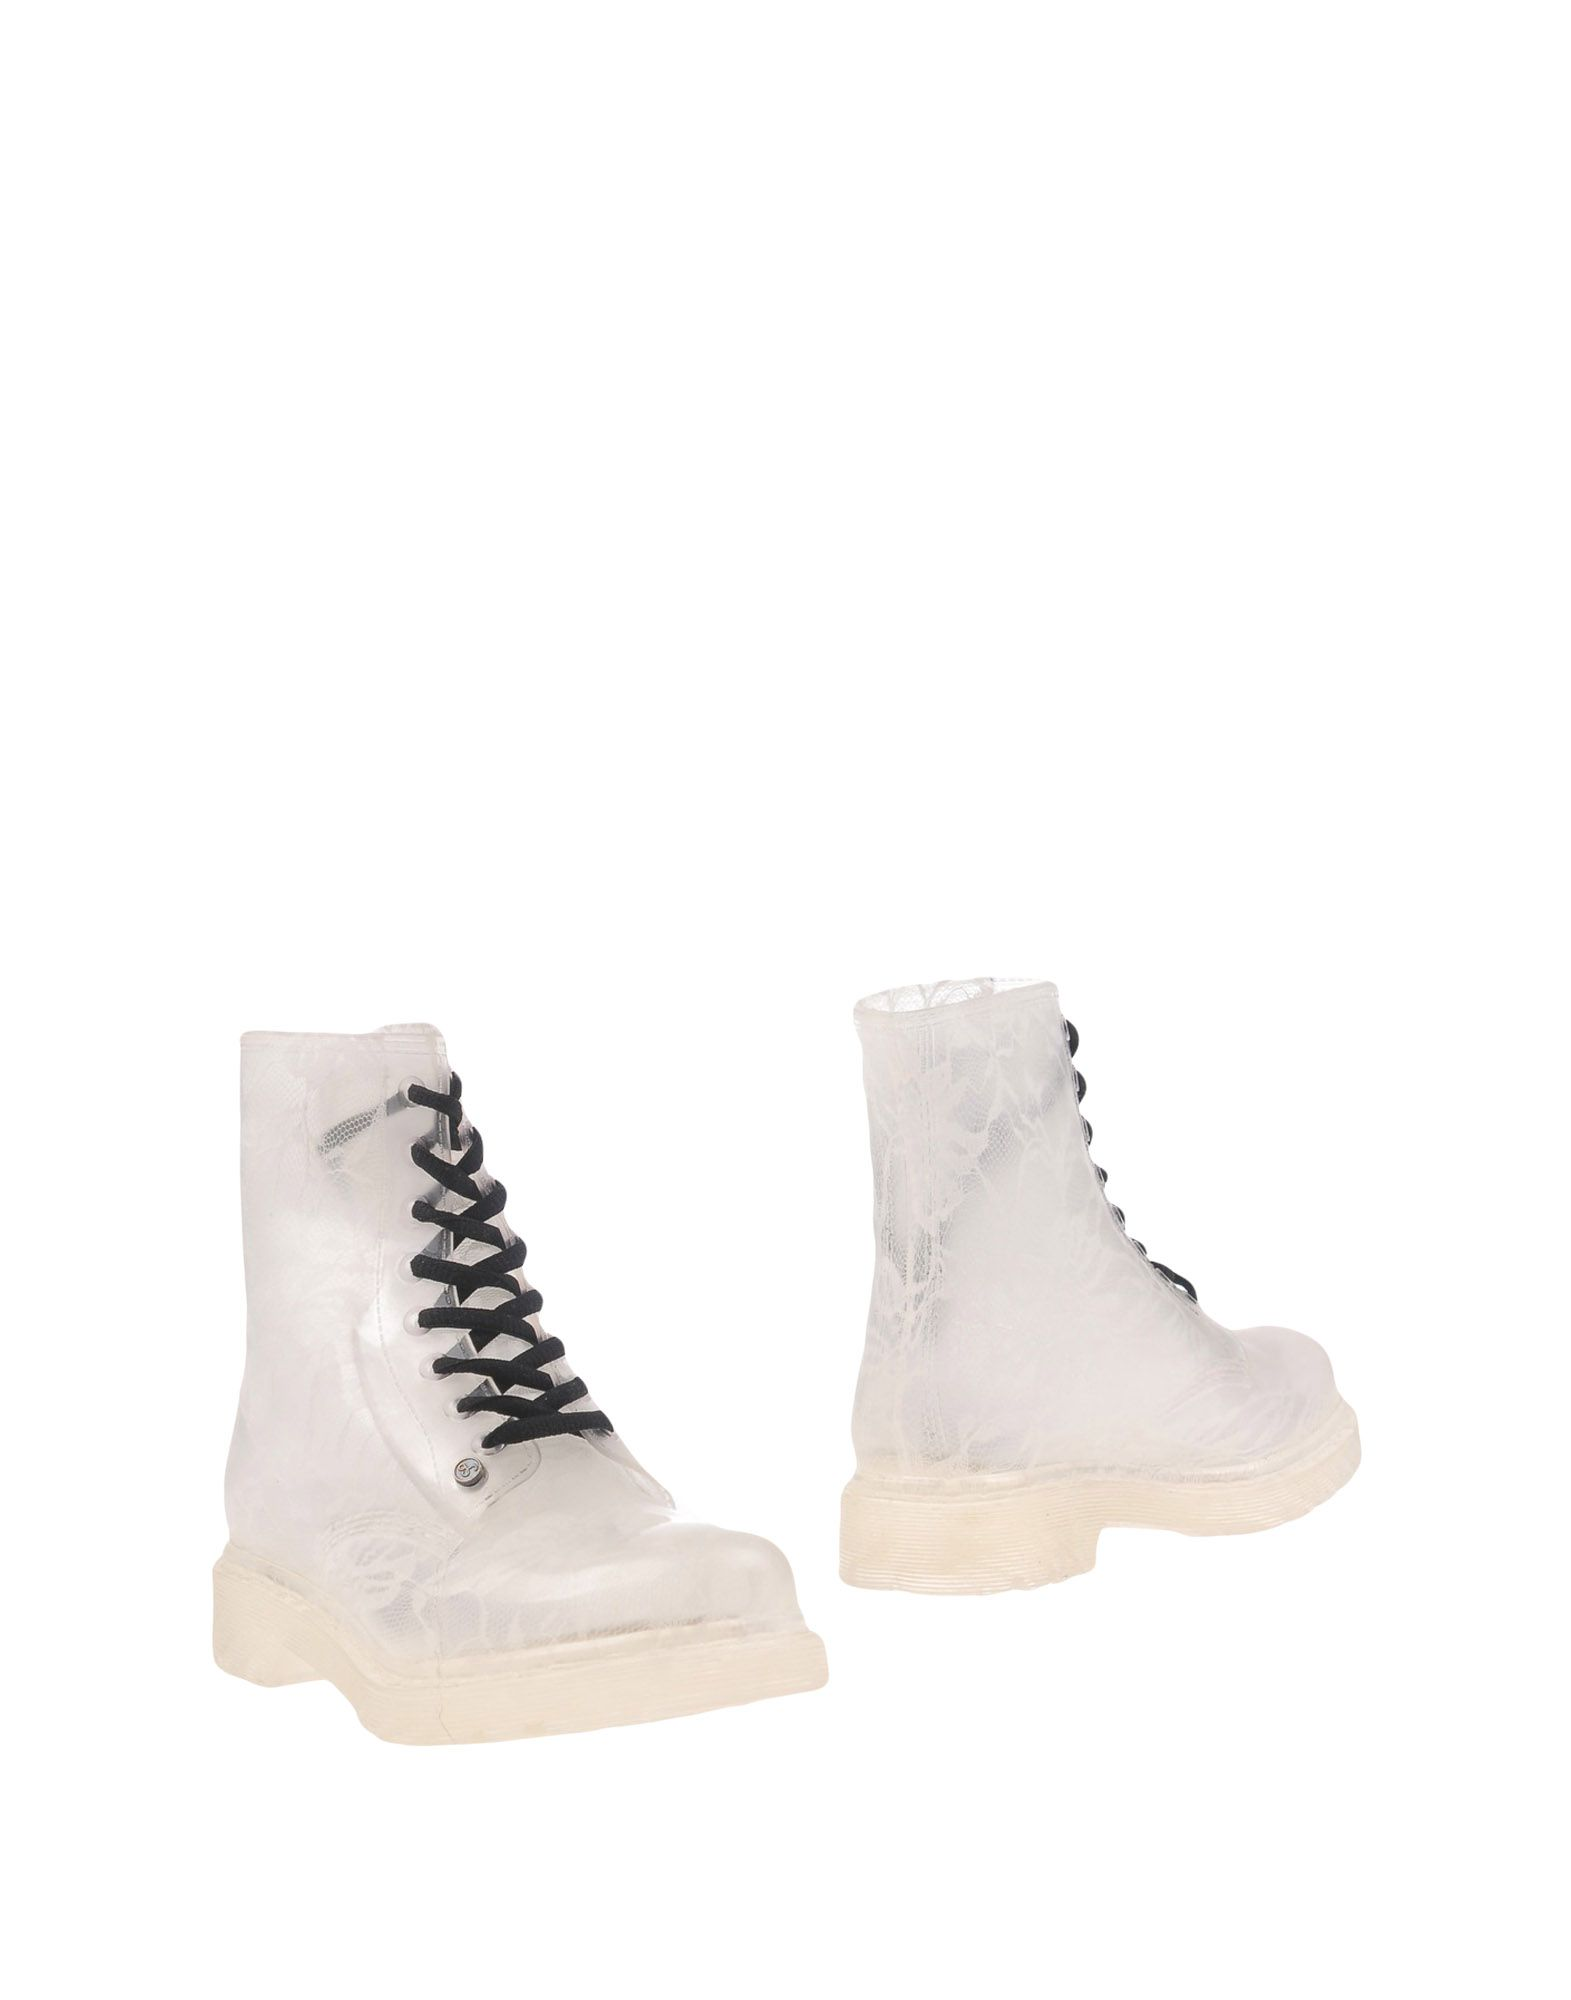 G SIX WORKSHOP Ankle Boots in White